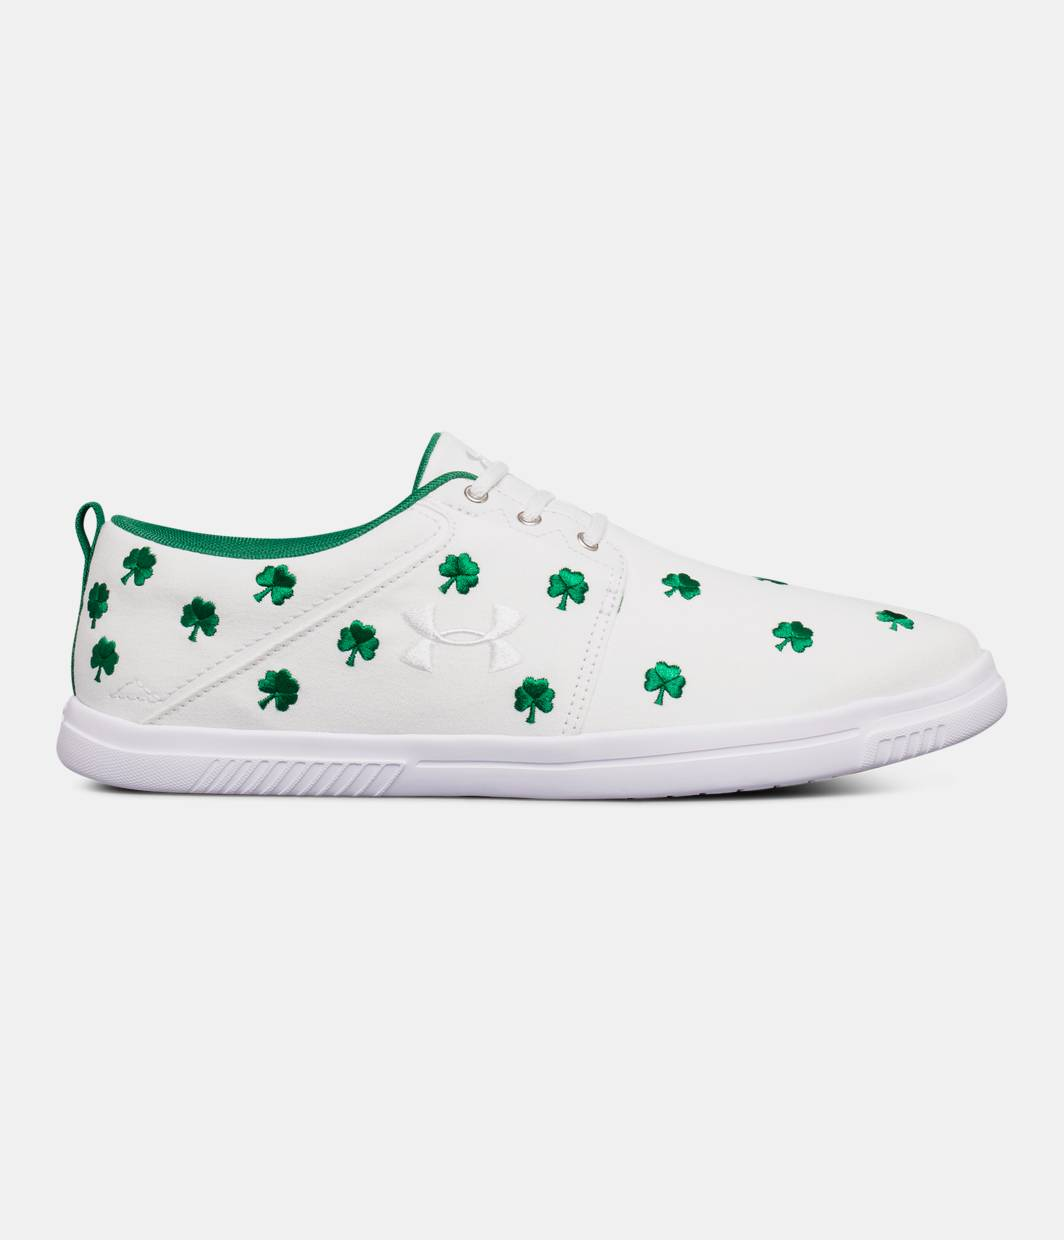 Under Armour Critter Encounter IV How Much Sale Online YPlvOACCO